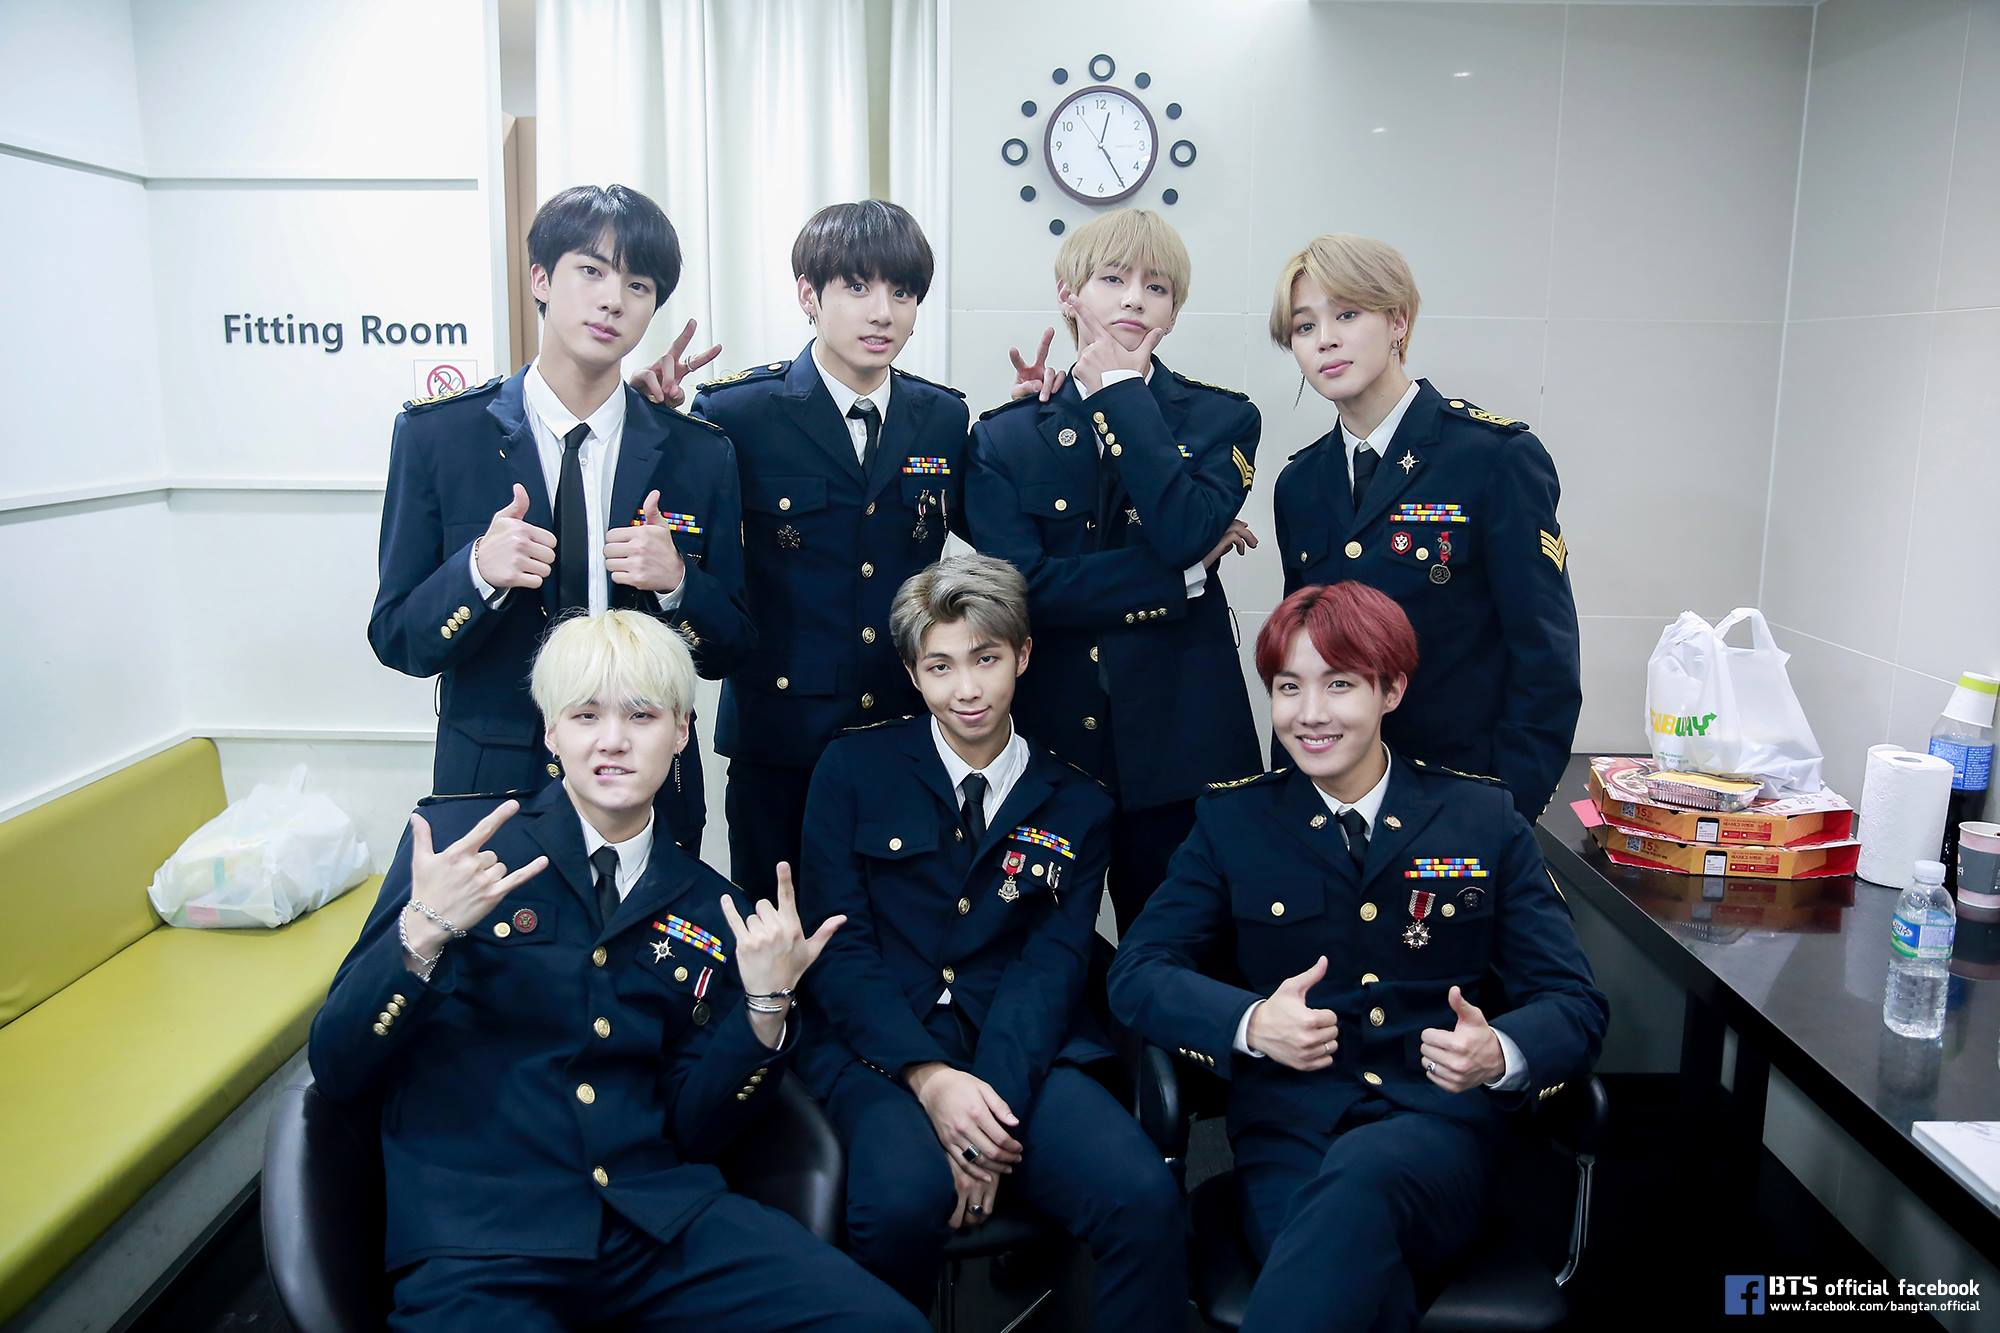 BTS And ARMY Relive Some Of The Best Moments Of The Past